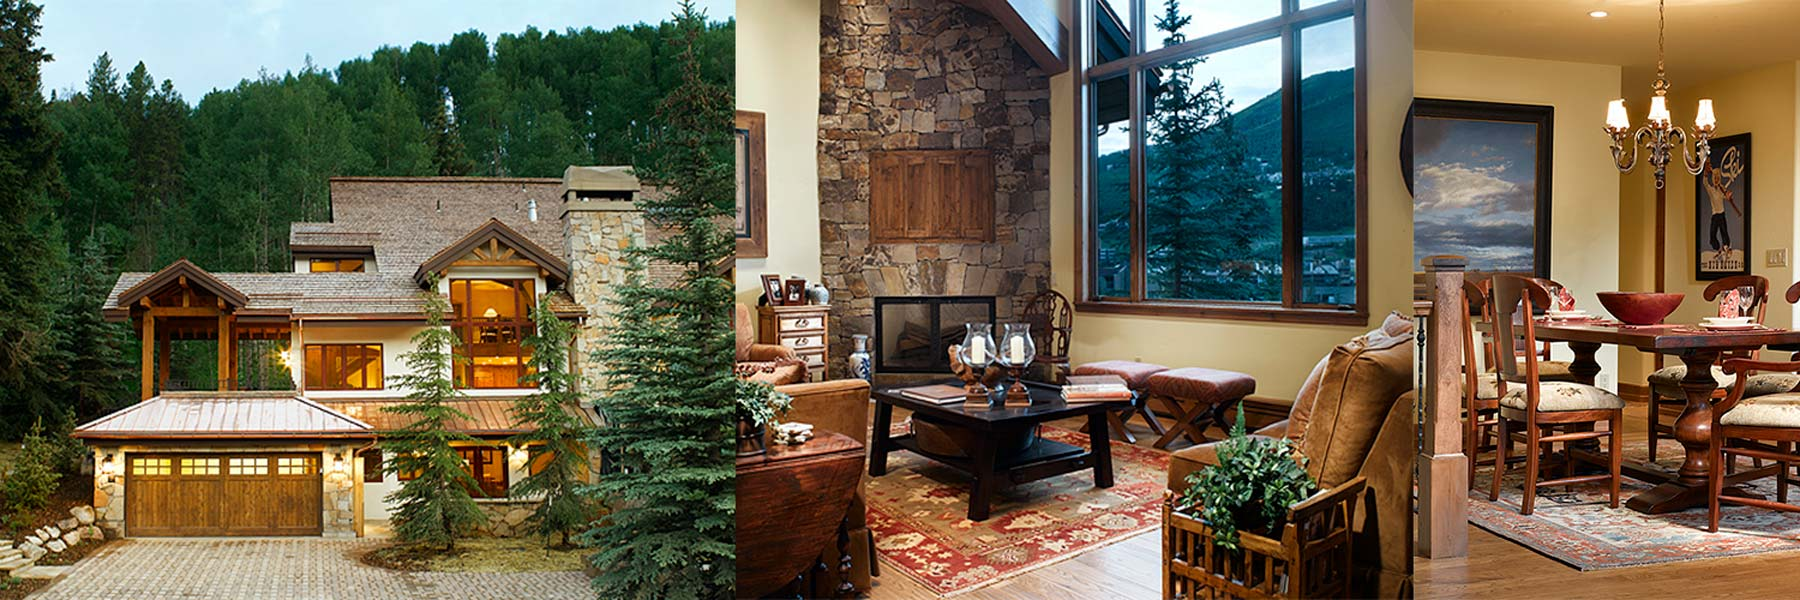 Three images of 600 Forest Road, Vail, Colorado